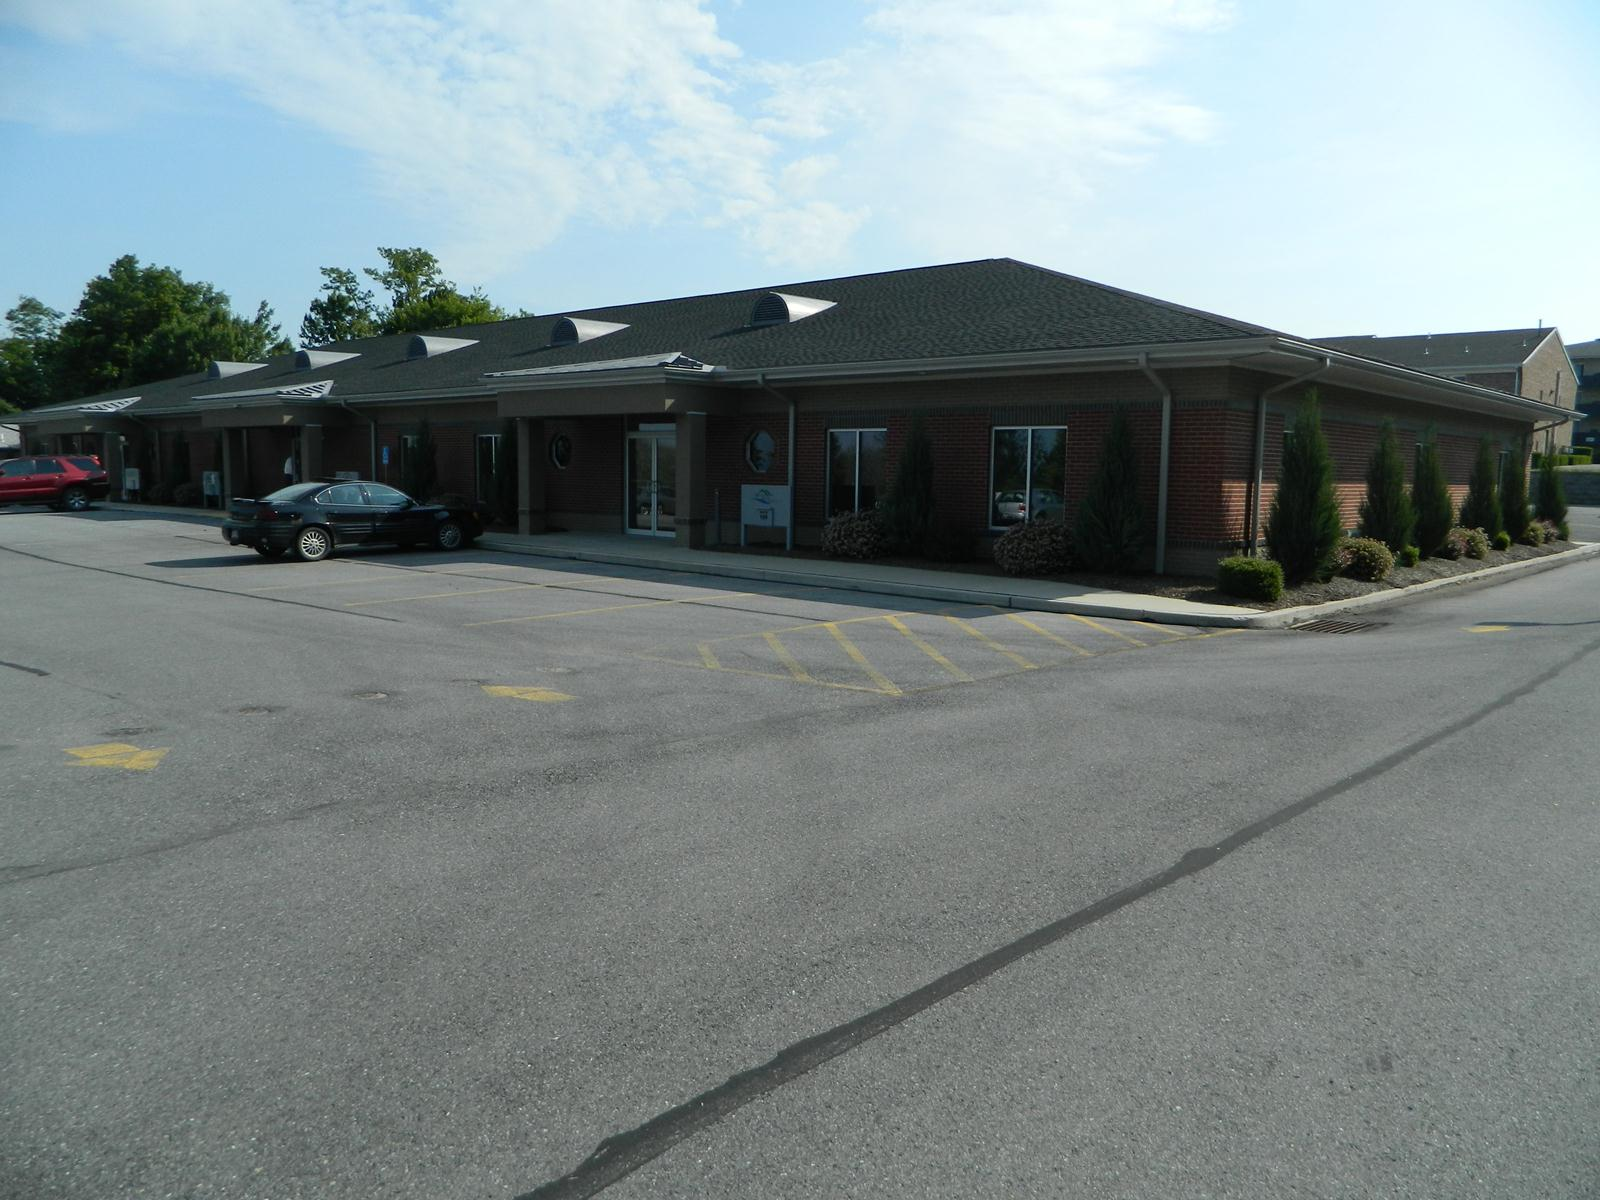 Richland Executive Suites 334 Budfield St. Johnstown PA 15904 - $4,900 per month